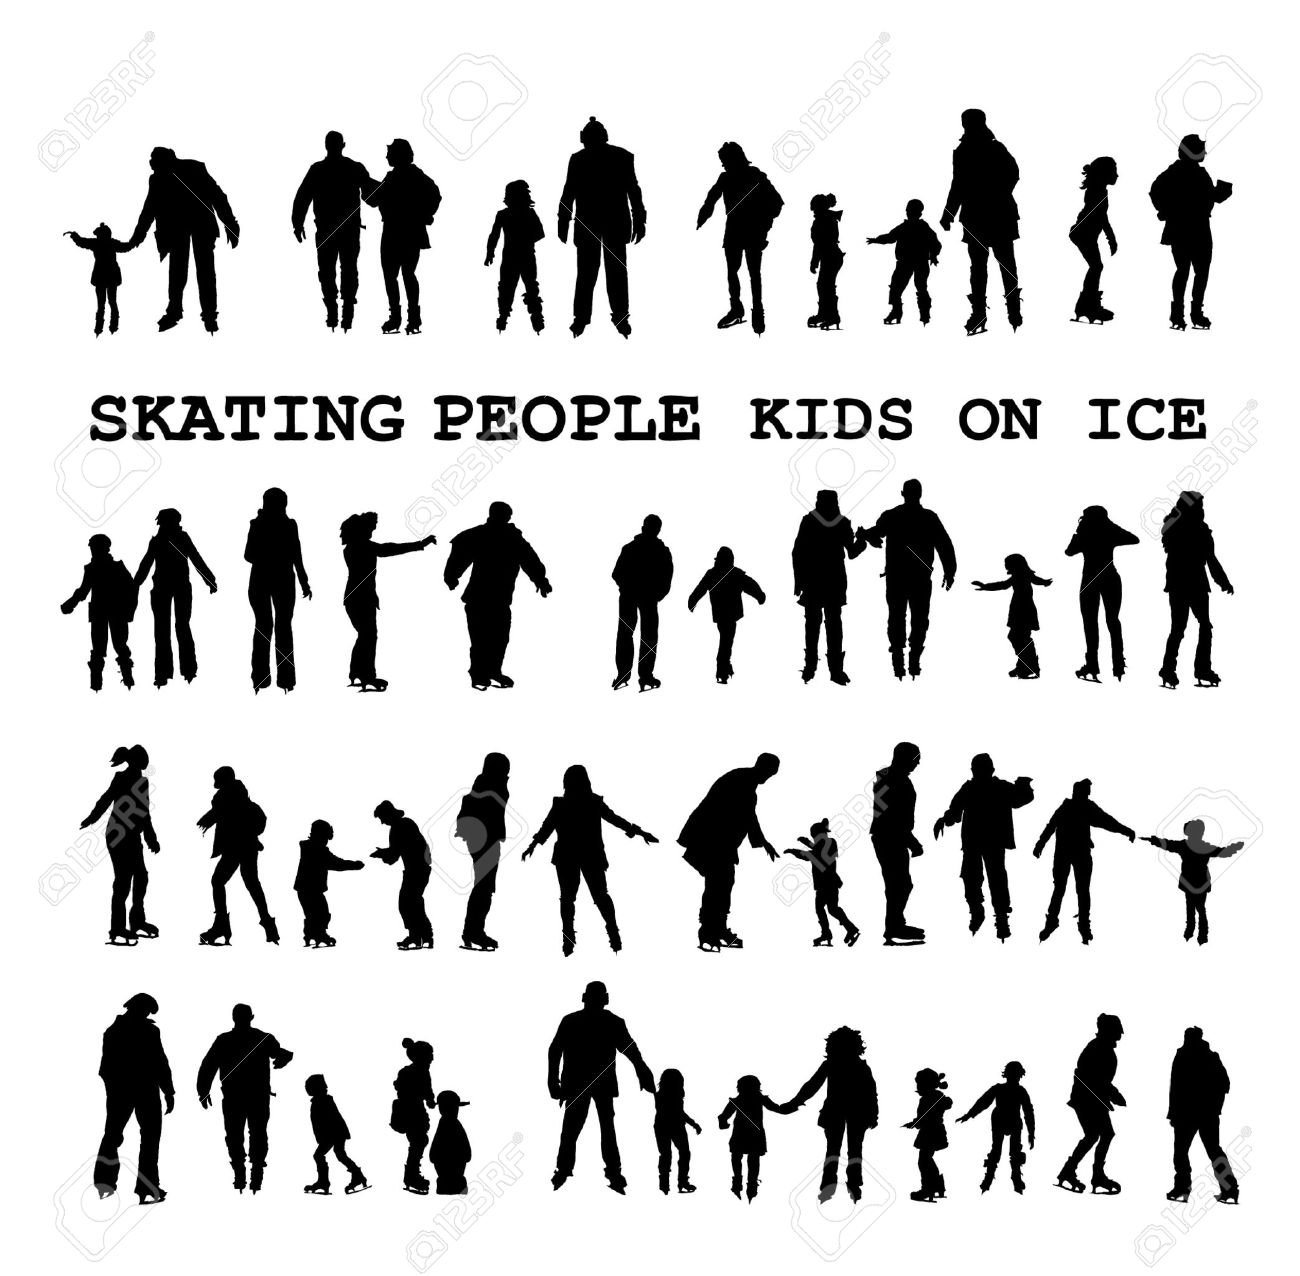 Skating people silhouettes on the ice rink Stock Vector - 11478725